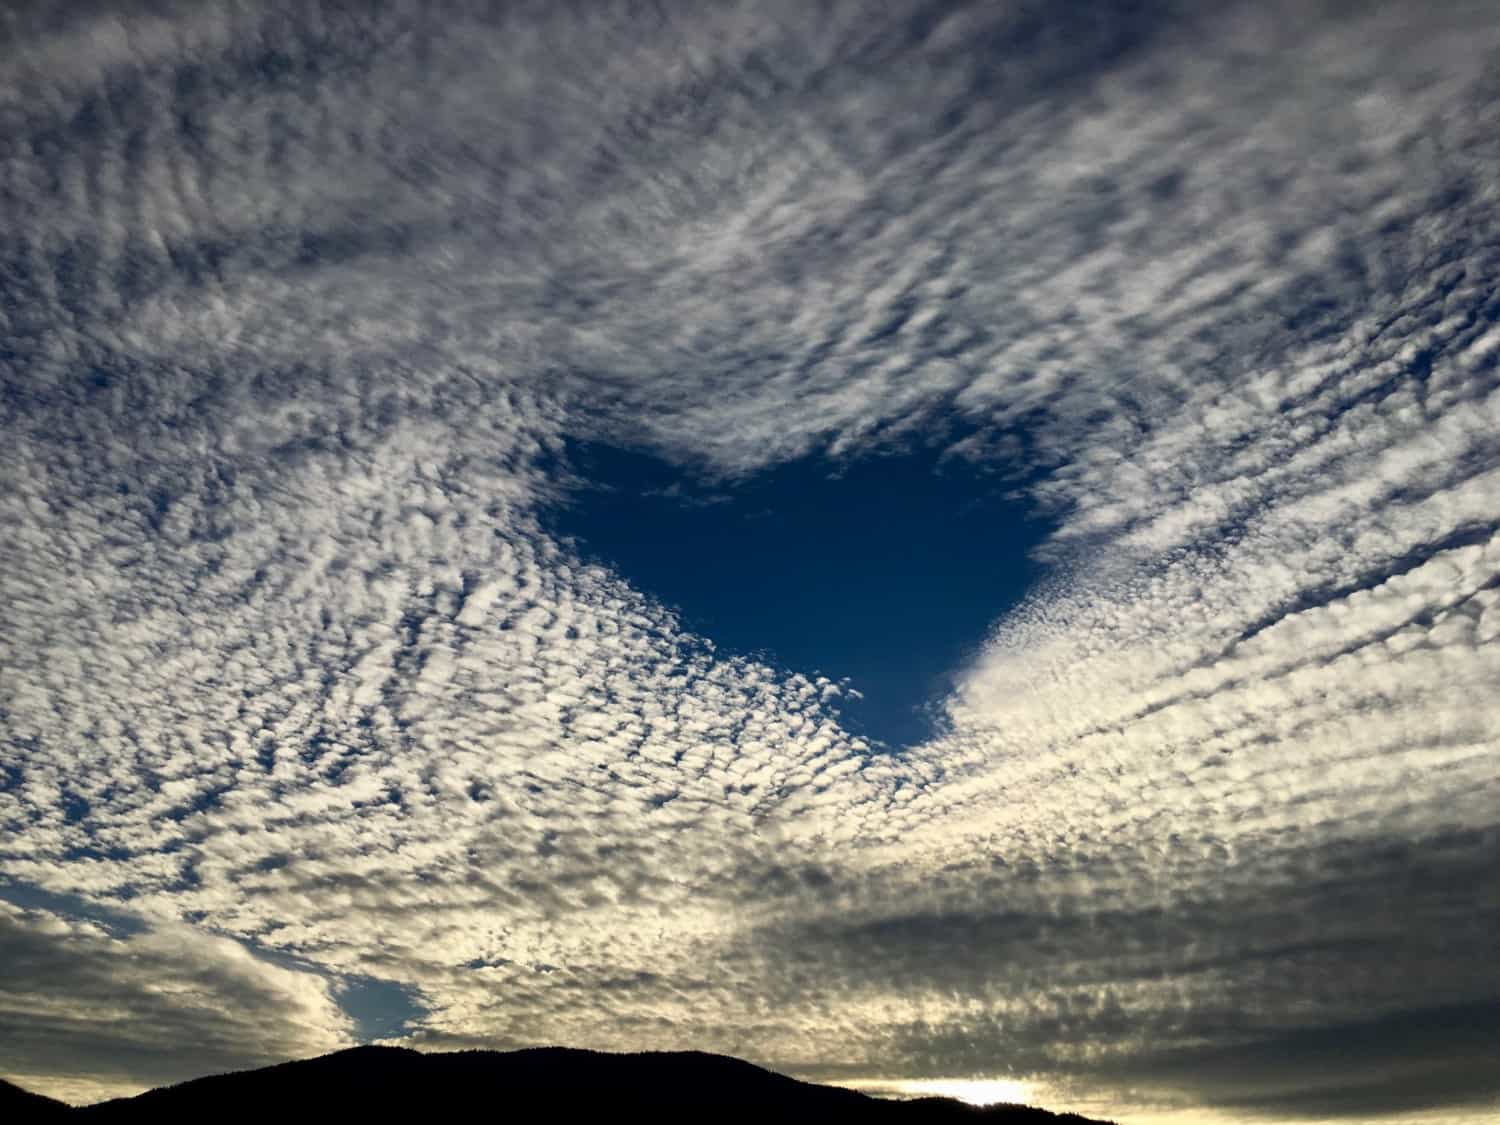 Heart-shaped hole in a cloudy sky